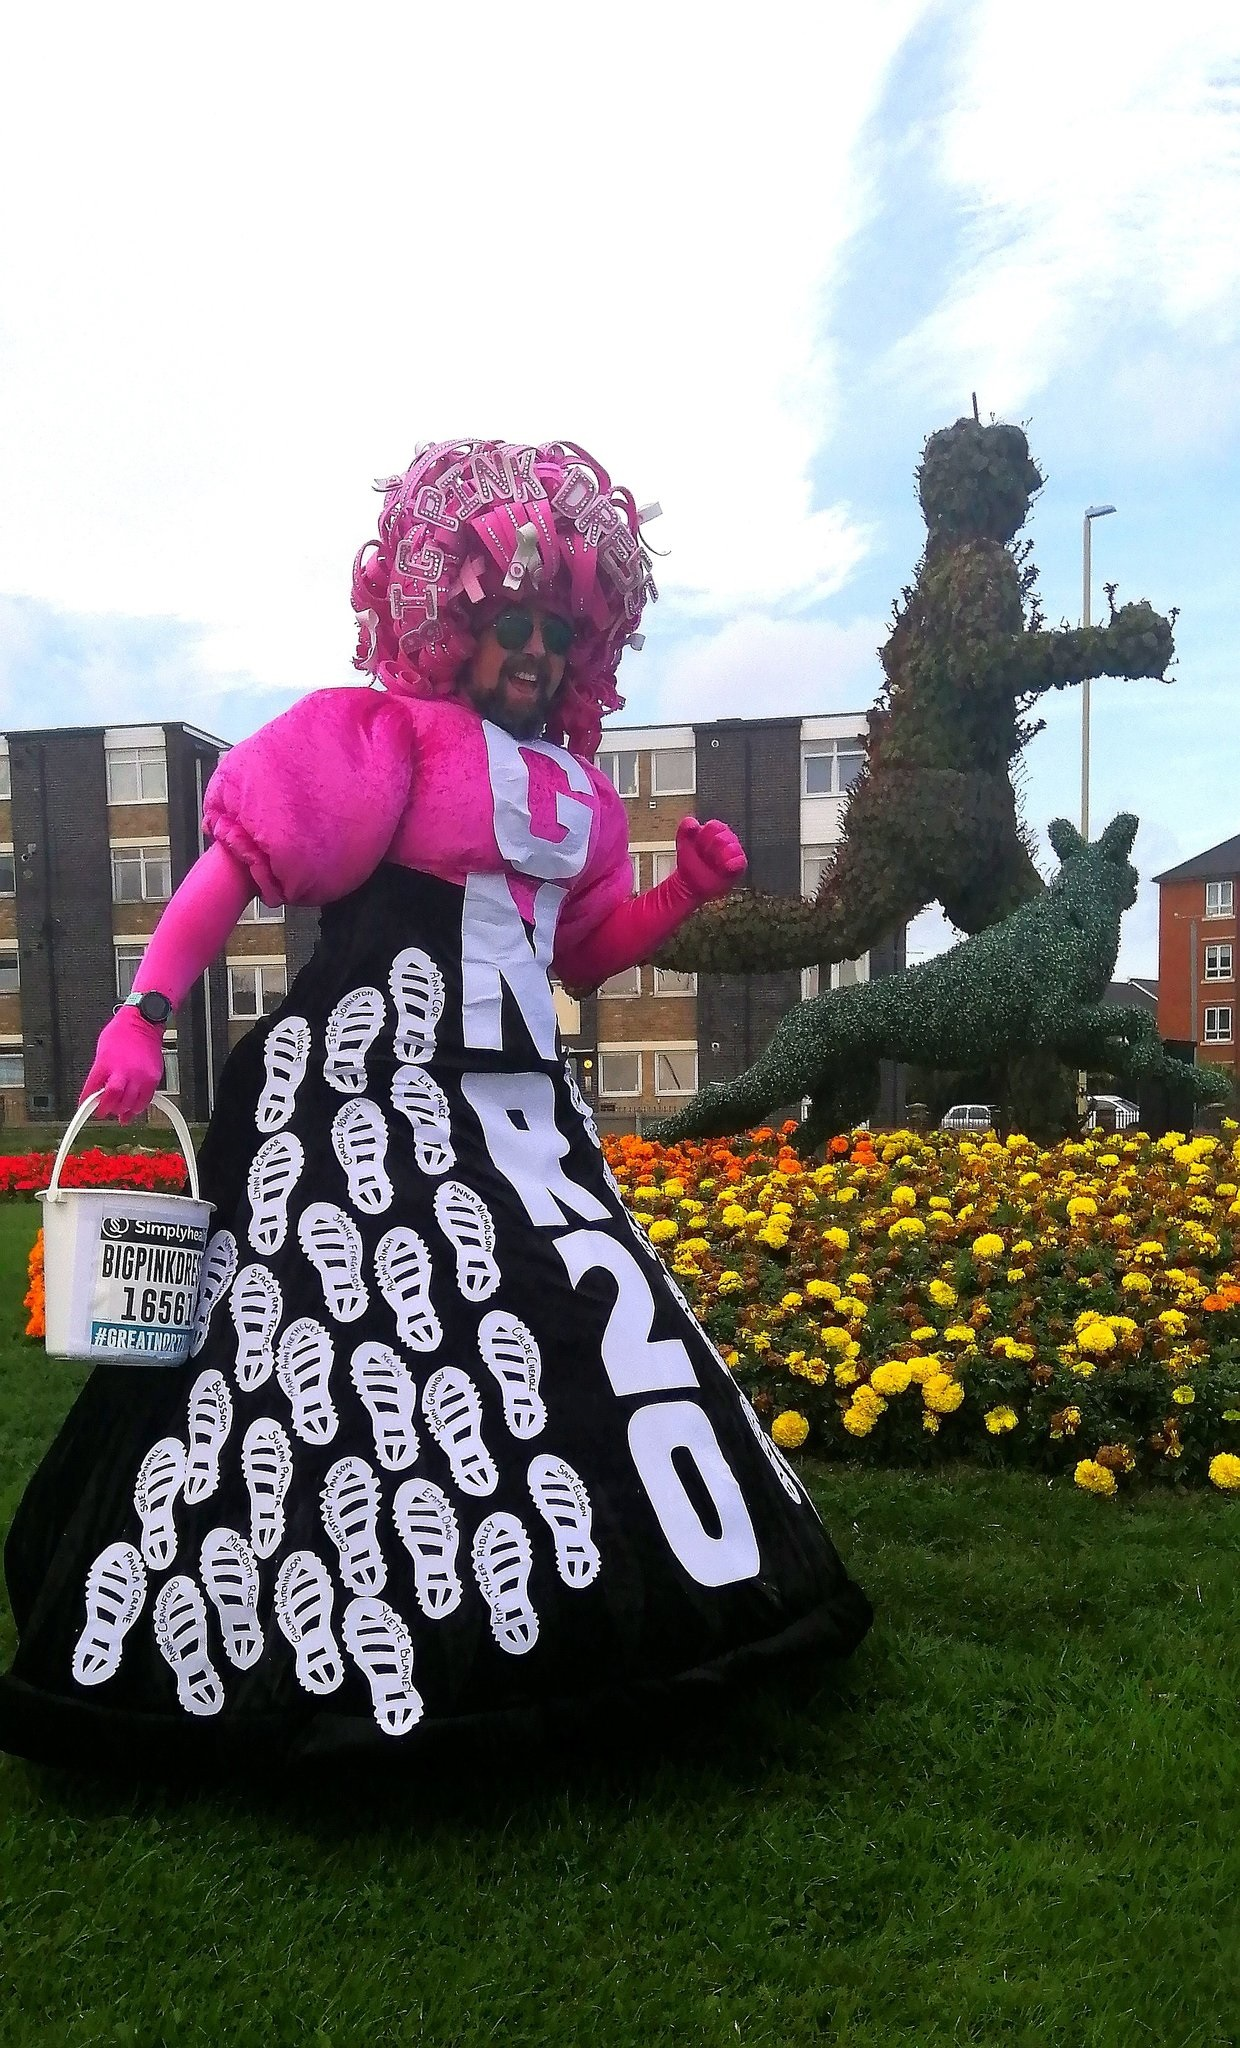 Colin Burgin-Plews, from South Shields, who is known for running various races in a pink dress